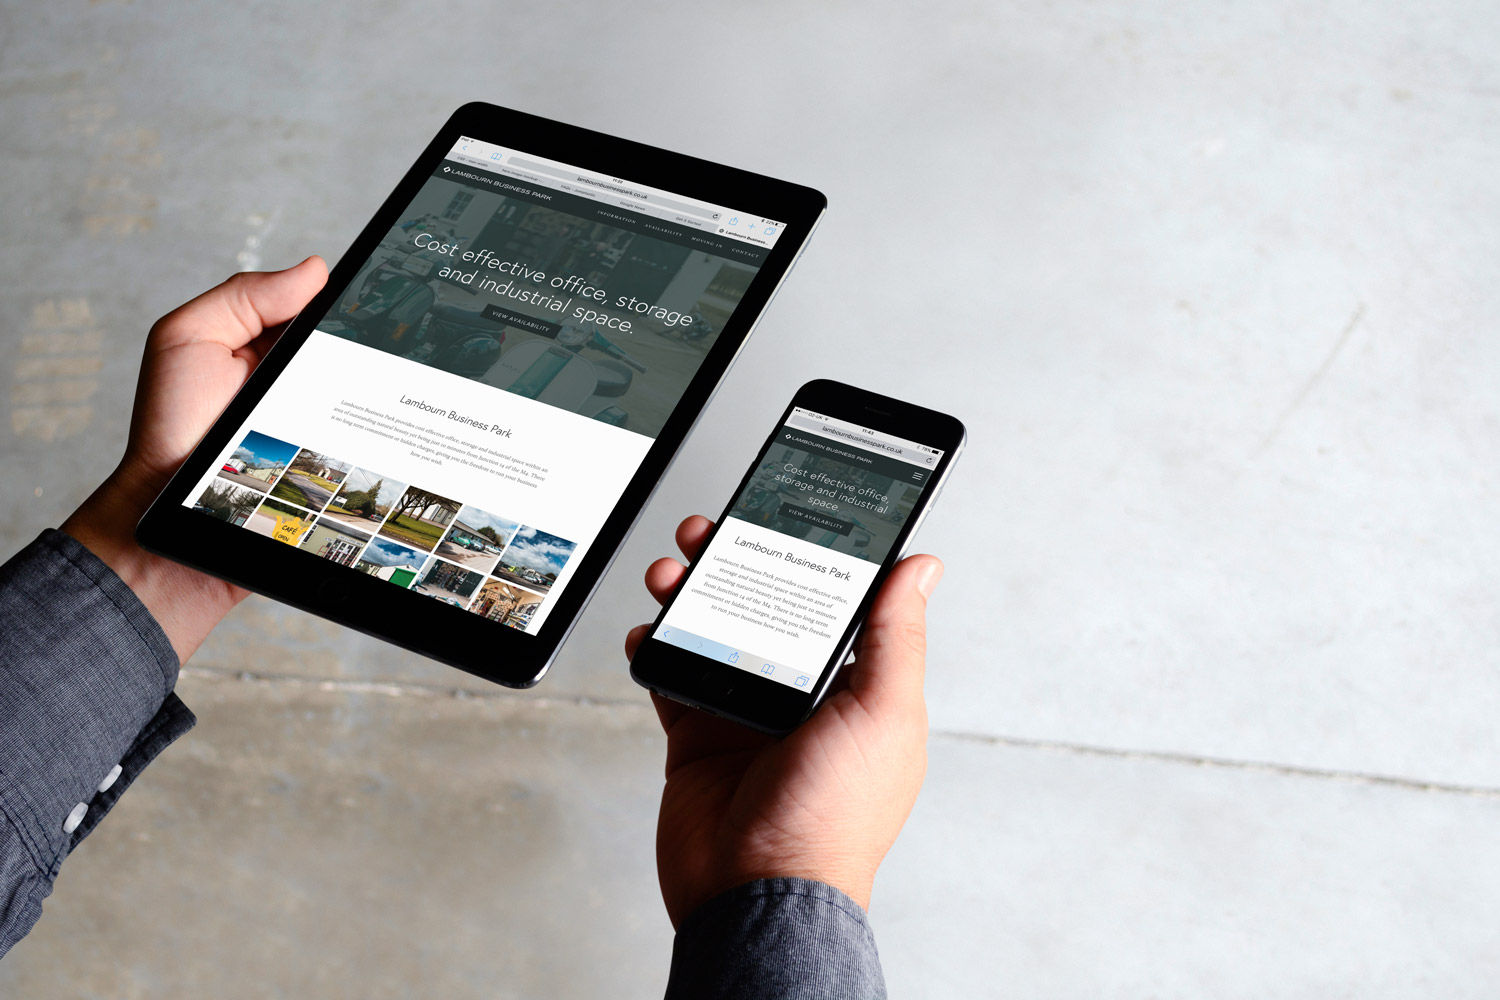 lambourn-business-park-website-responsive-homepage-ipad-iphone-home-page-get-it-sorted.JPG